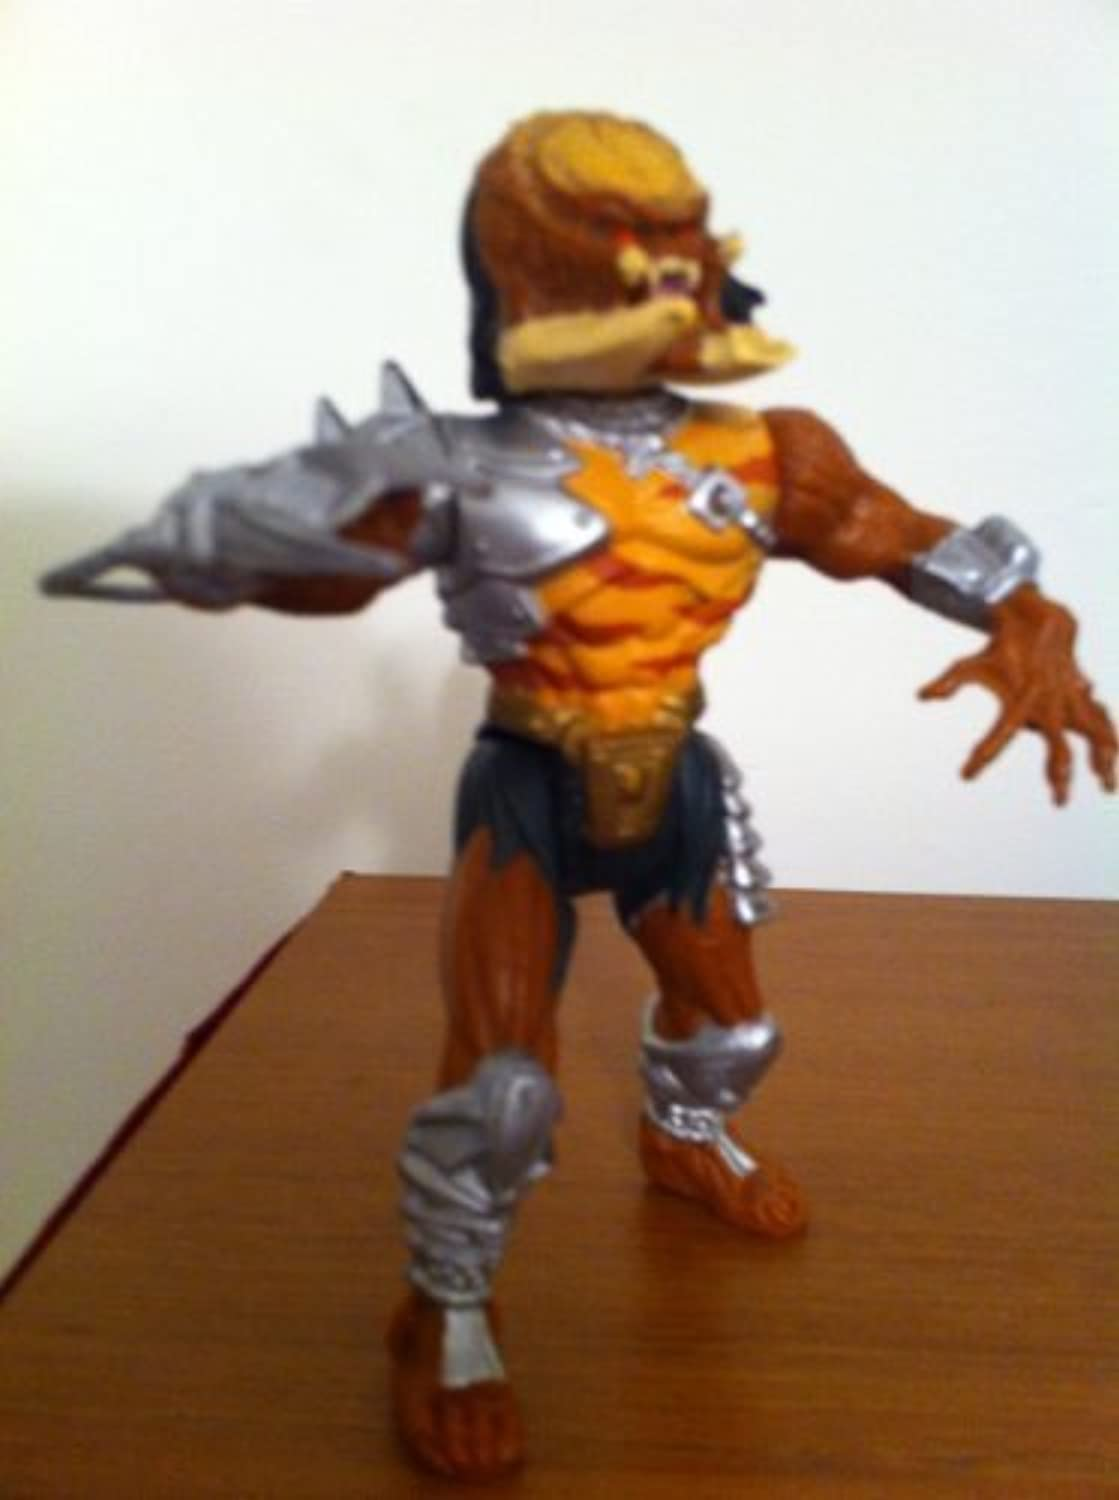 CRACKED TUSK ProtATOR Action Figure (1993 kenner) by Protator